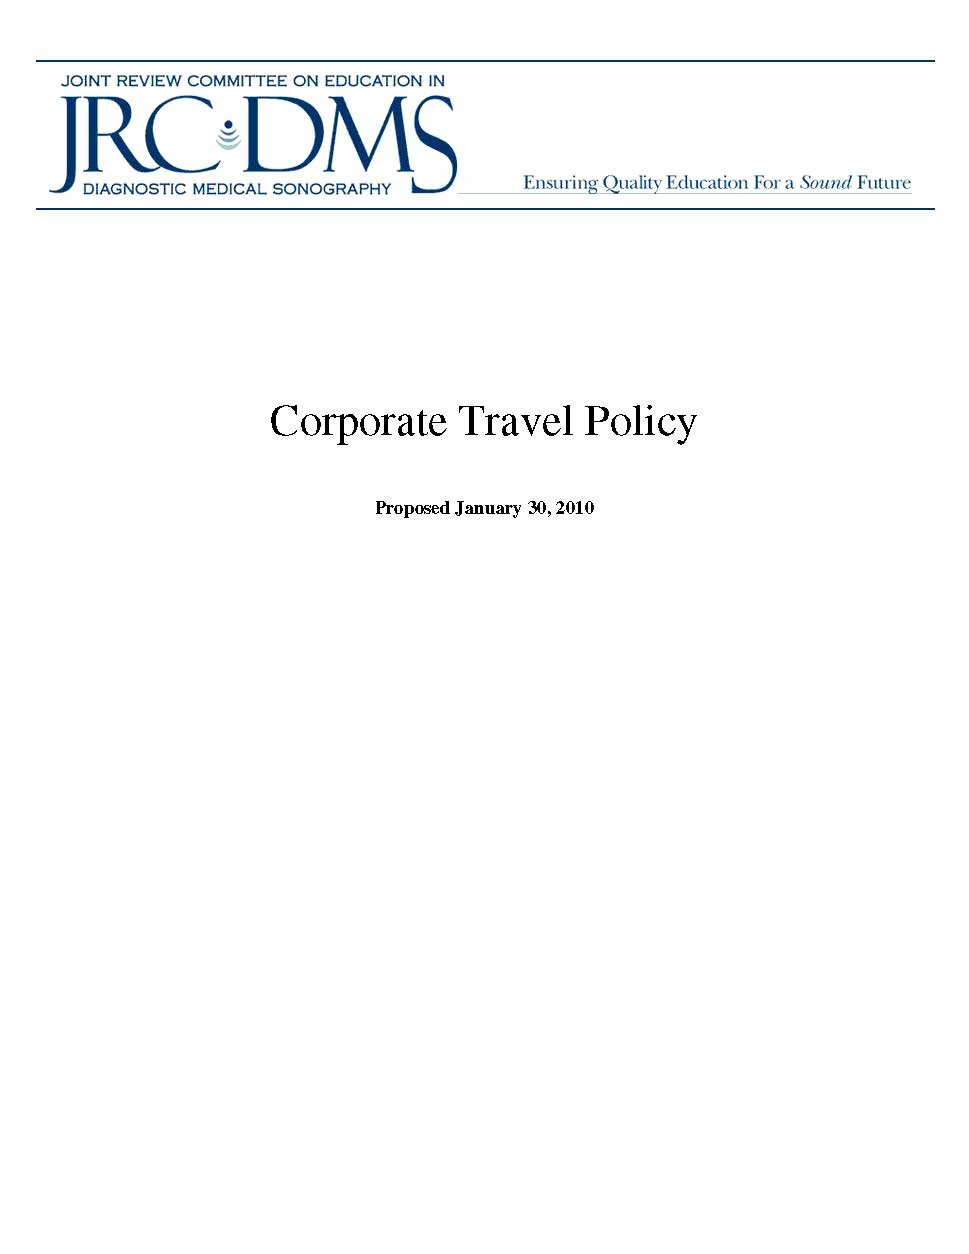 Travel Policies and Procedures Template Awesome Corporate Travel Policy Template Pdf format